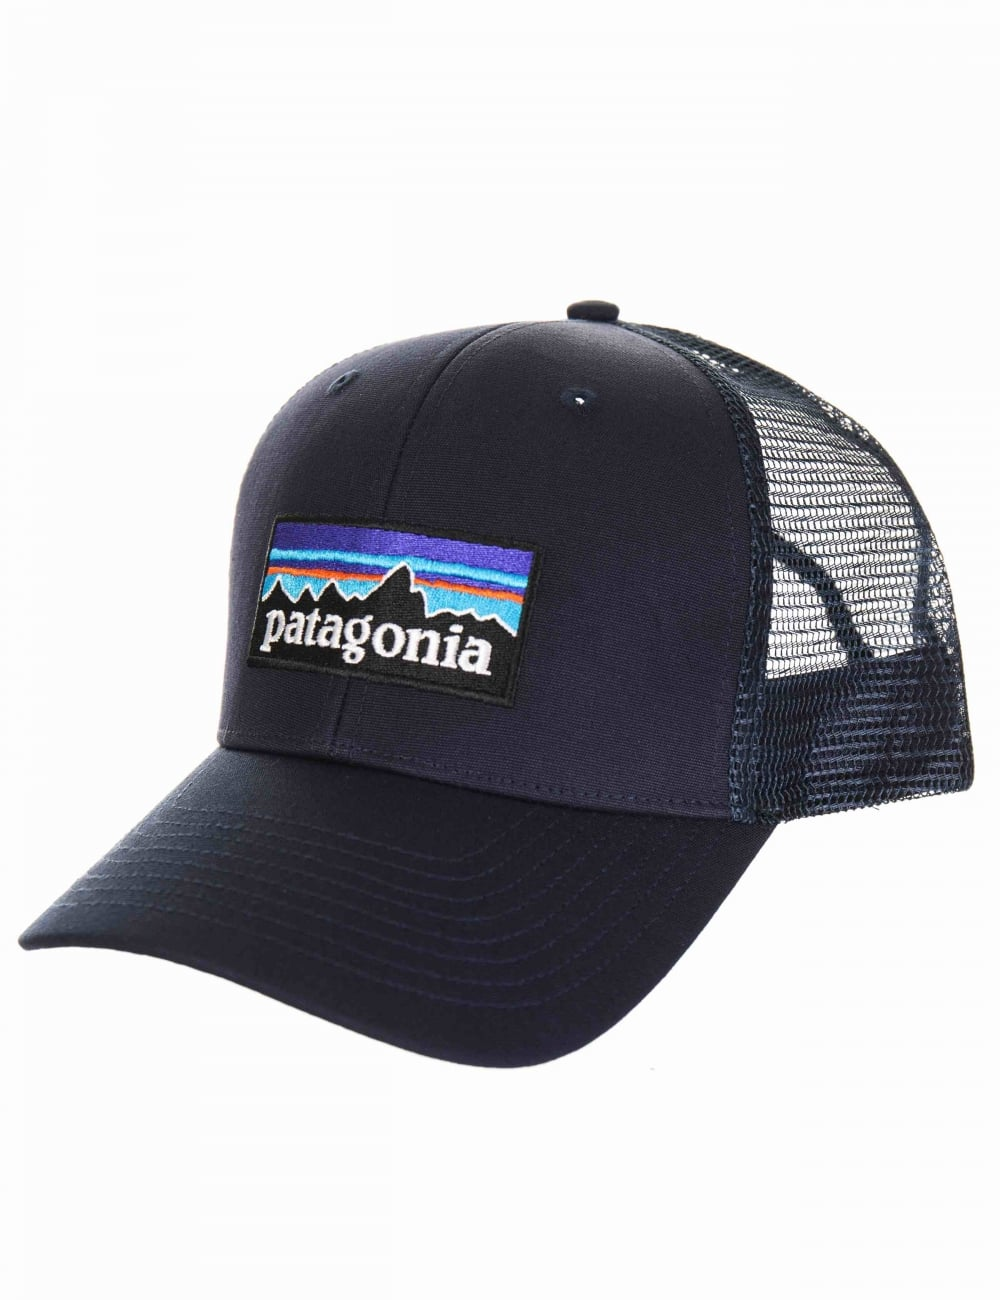 Patagonia P-6 Logo Trucker Hat - Navy Blue Navy Blue - Hat Shop from ... f4935a64d40